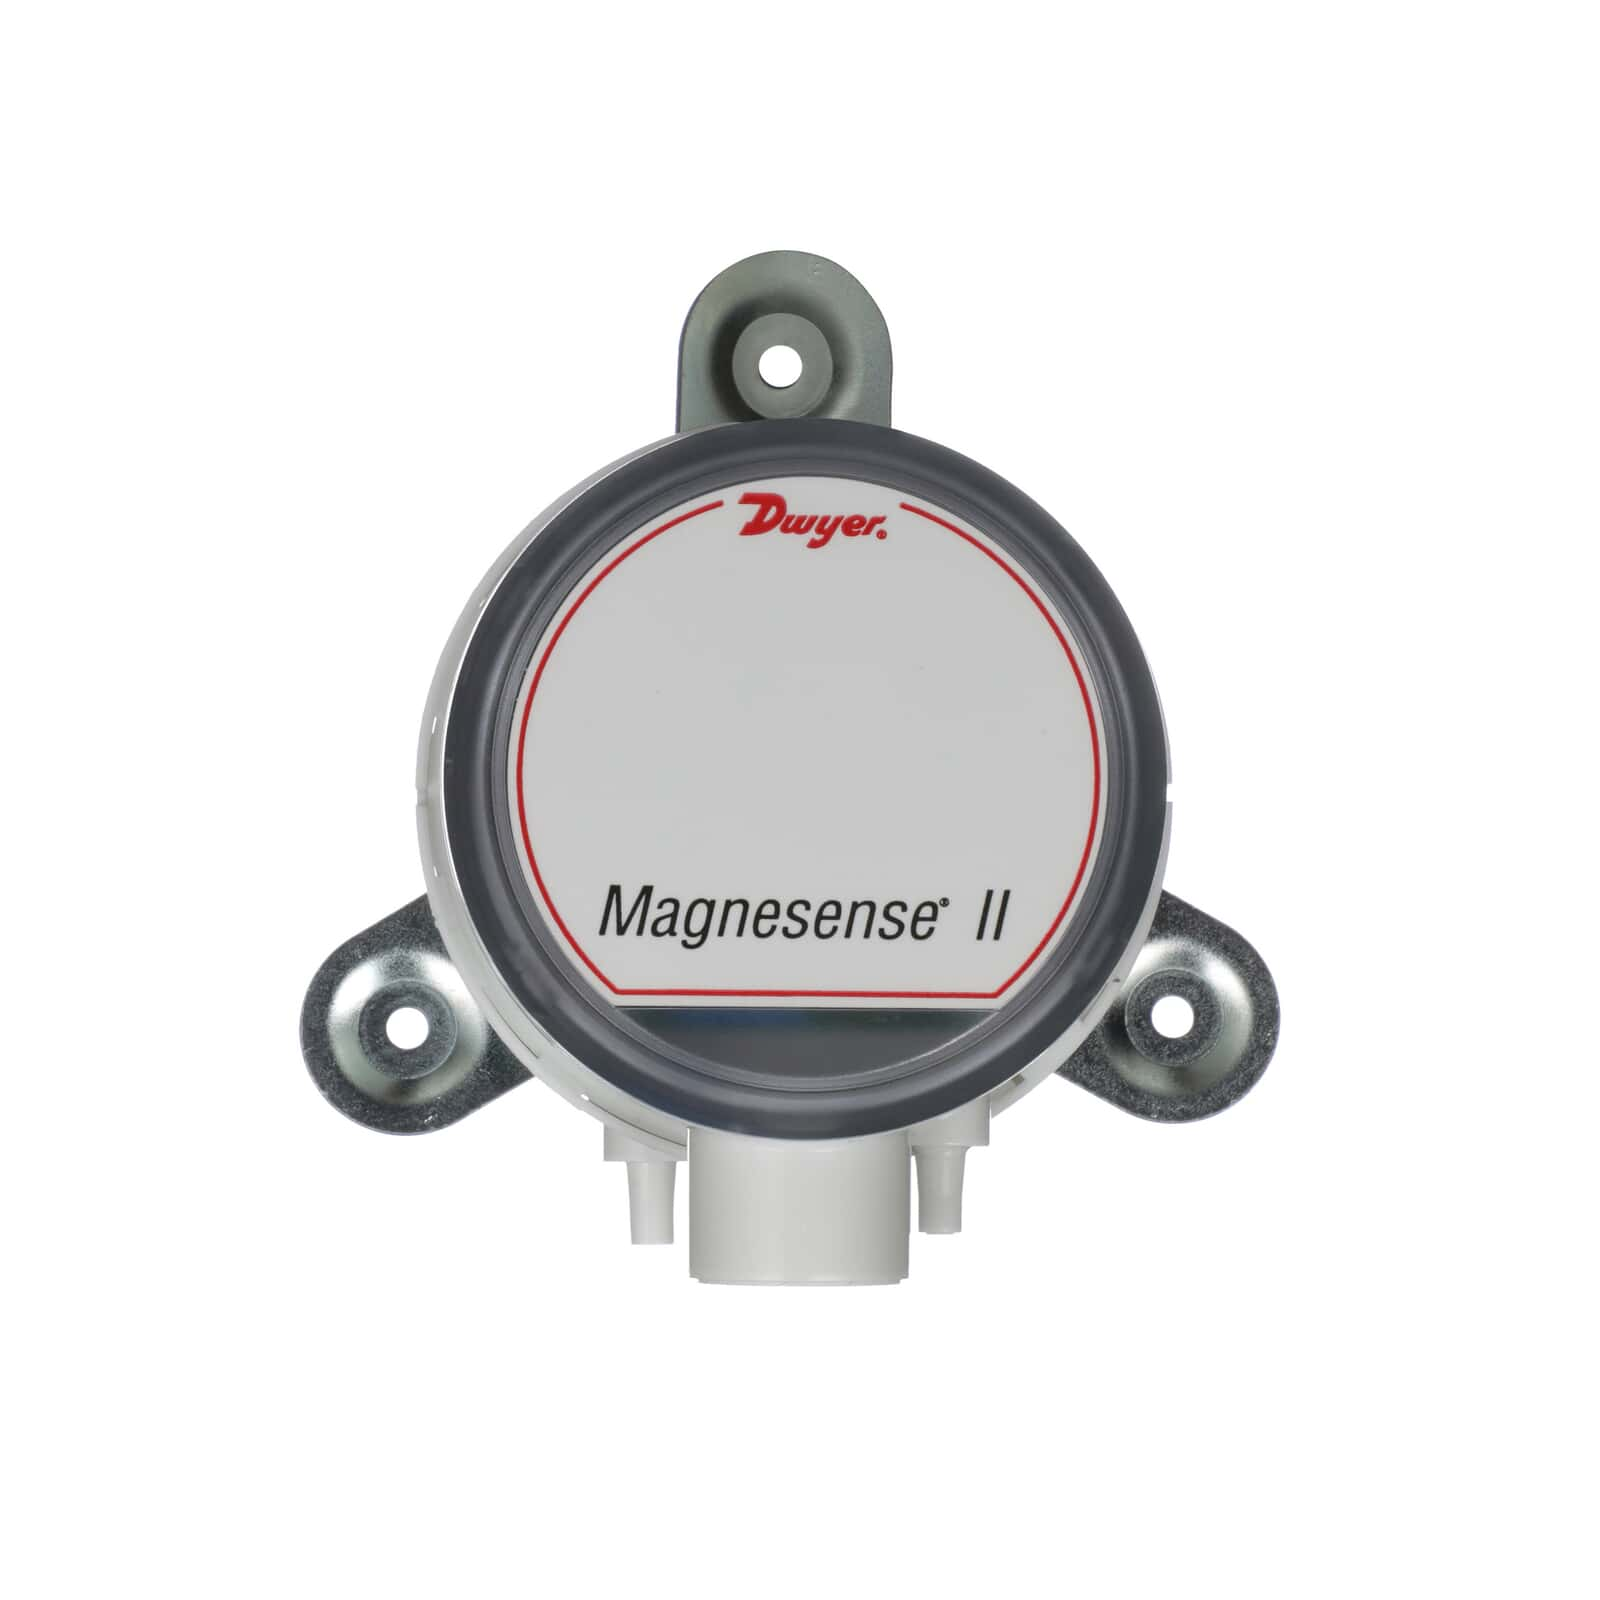 Series Ms2 Magnesense Ii Differential Pressure Transmitter Which Wiring Diagram Swipe To Spin